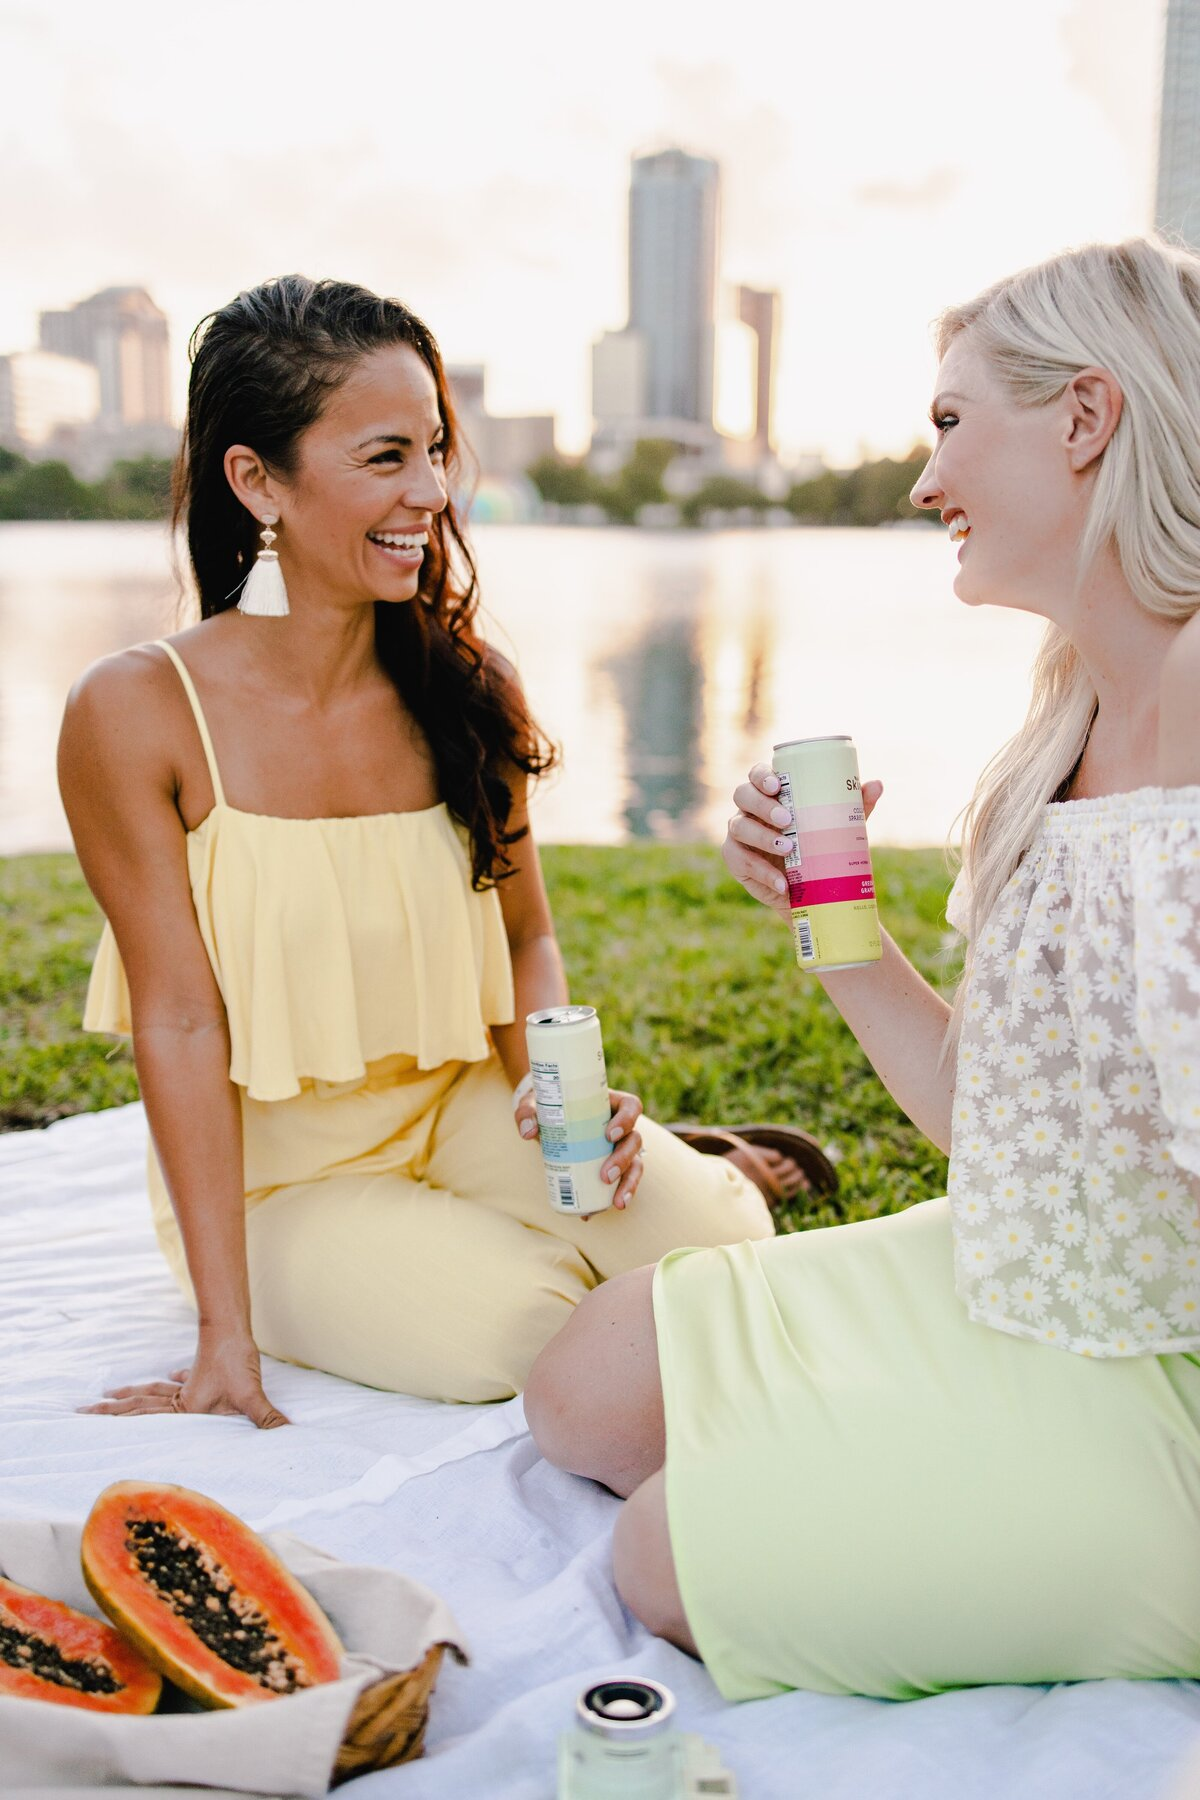 Lifestyle picnic videography for SkinTe Collagen beverage by Alex Perry